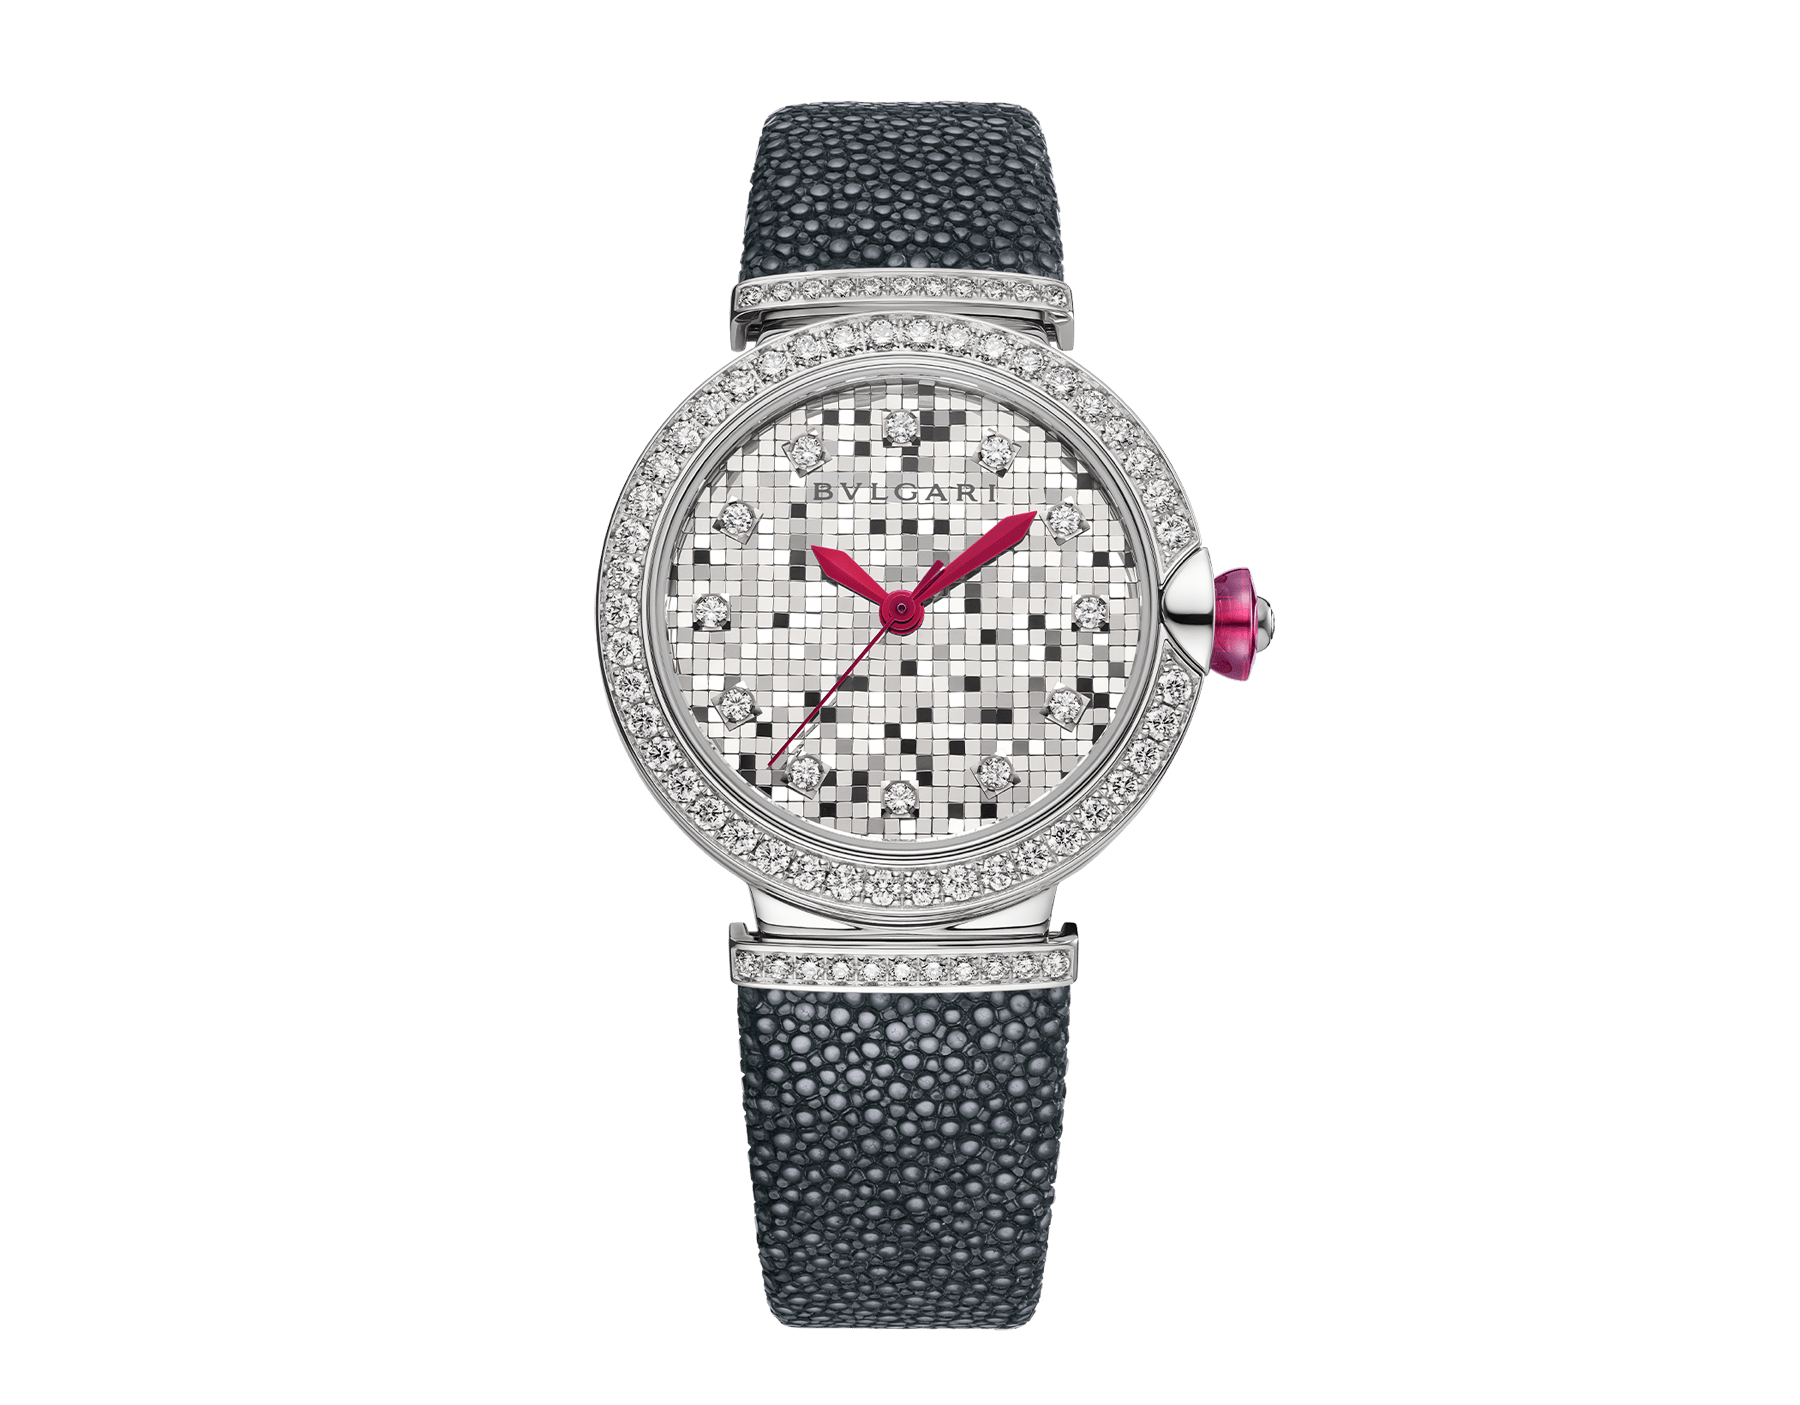 LVCEA watch with 18 kt white gold case set with diamonds, 18 kt white gold mosaic dial and black galuchat bracelet. 102830 image 1